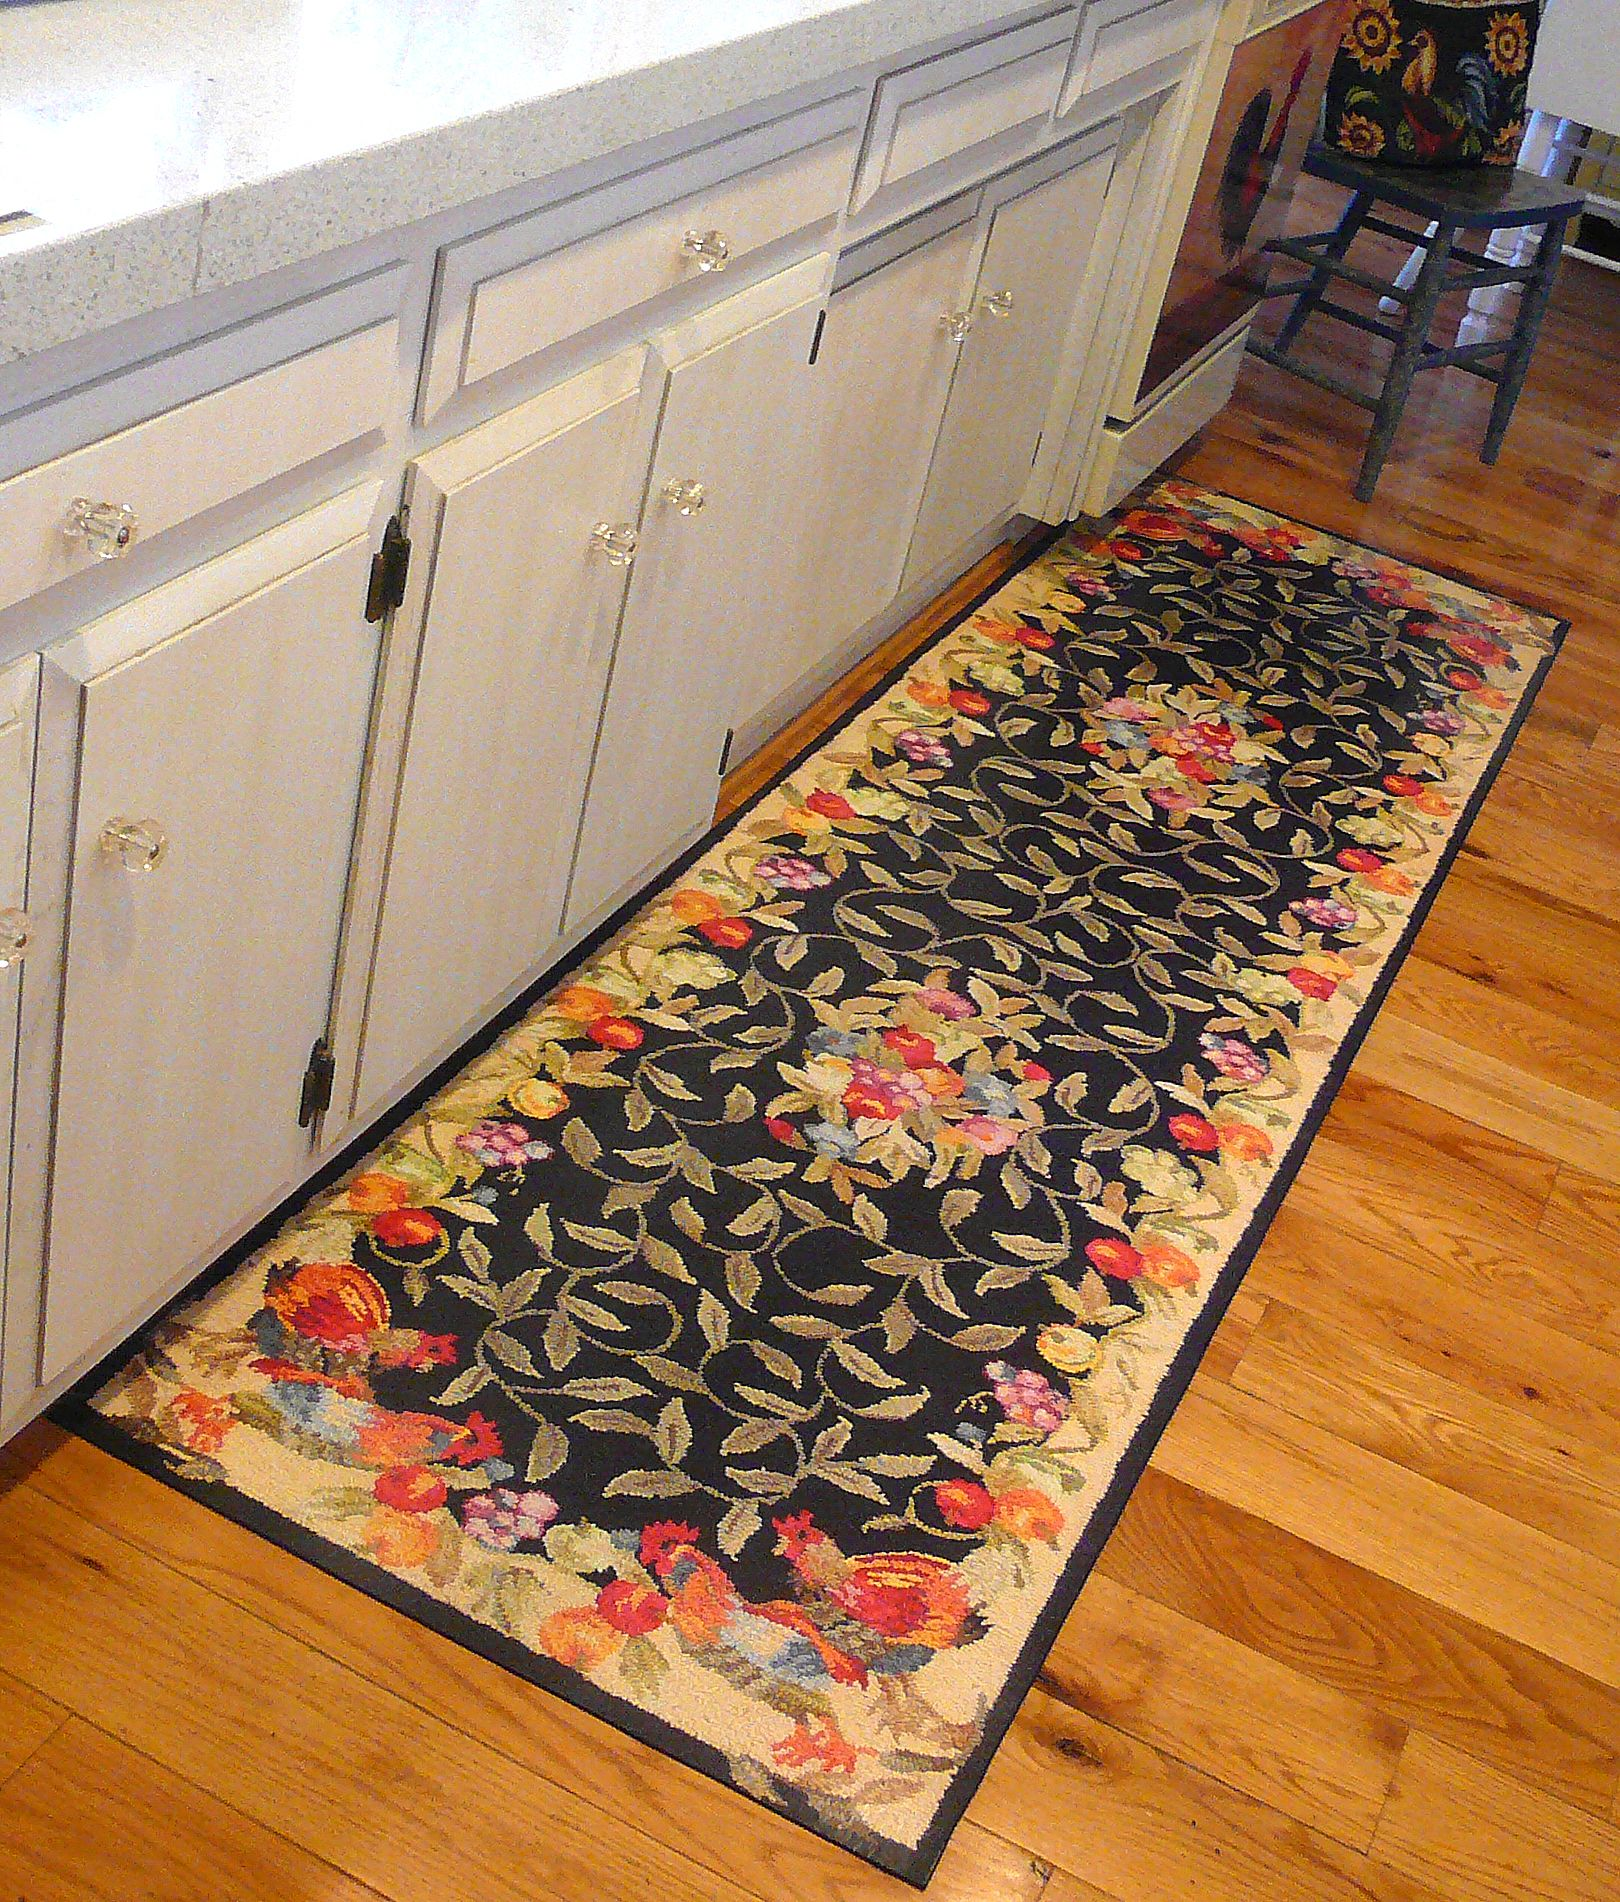 Kitchen Rugs Floral Pattern Design On Hardwood Floor